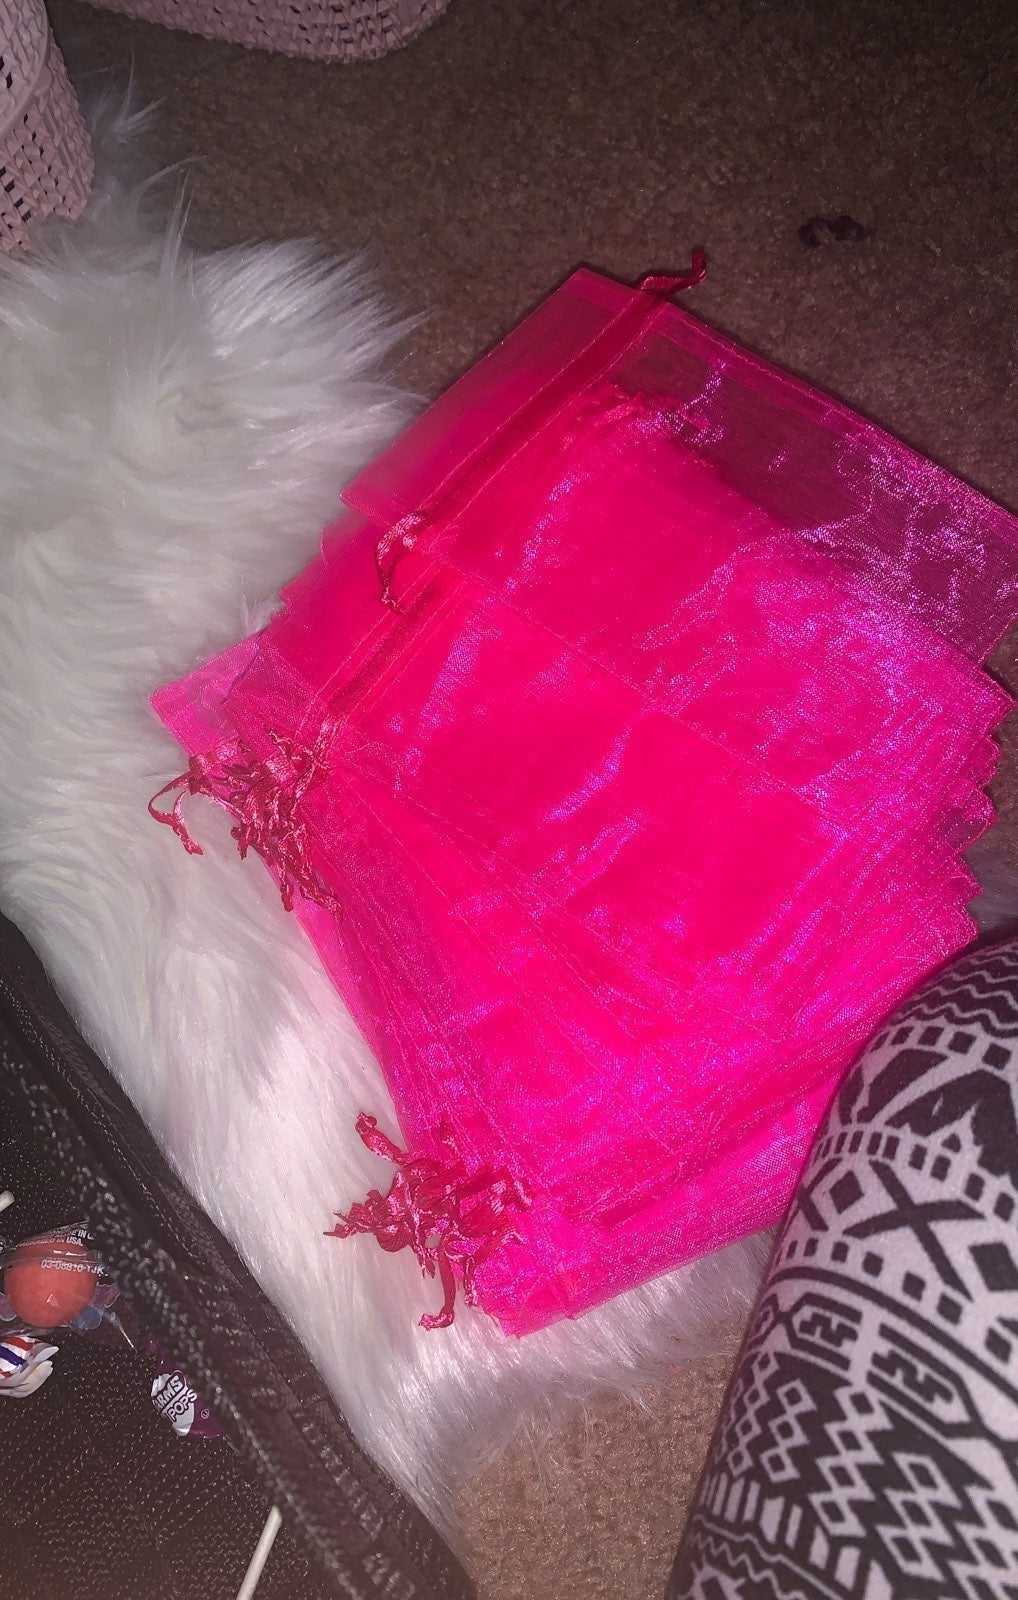 Hot pink bags